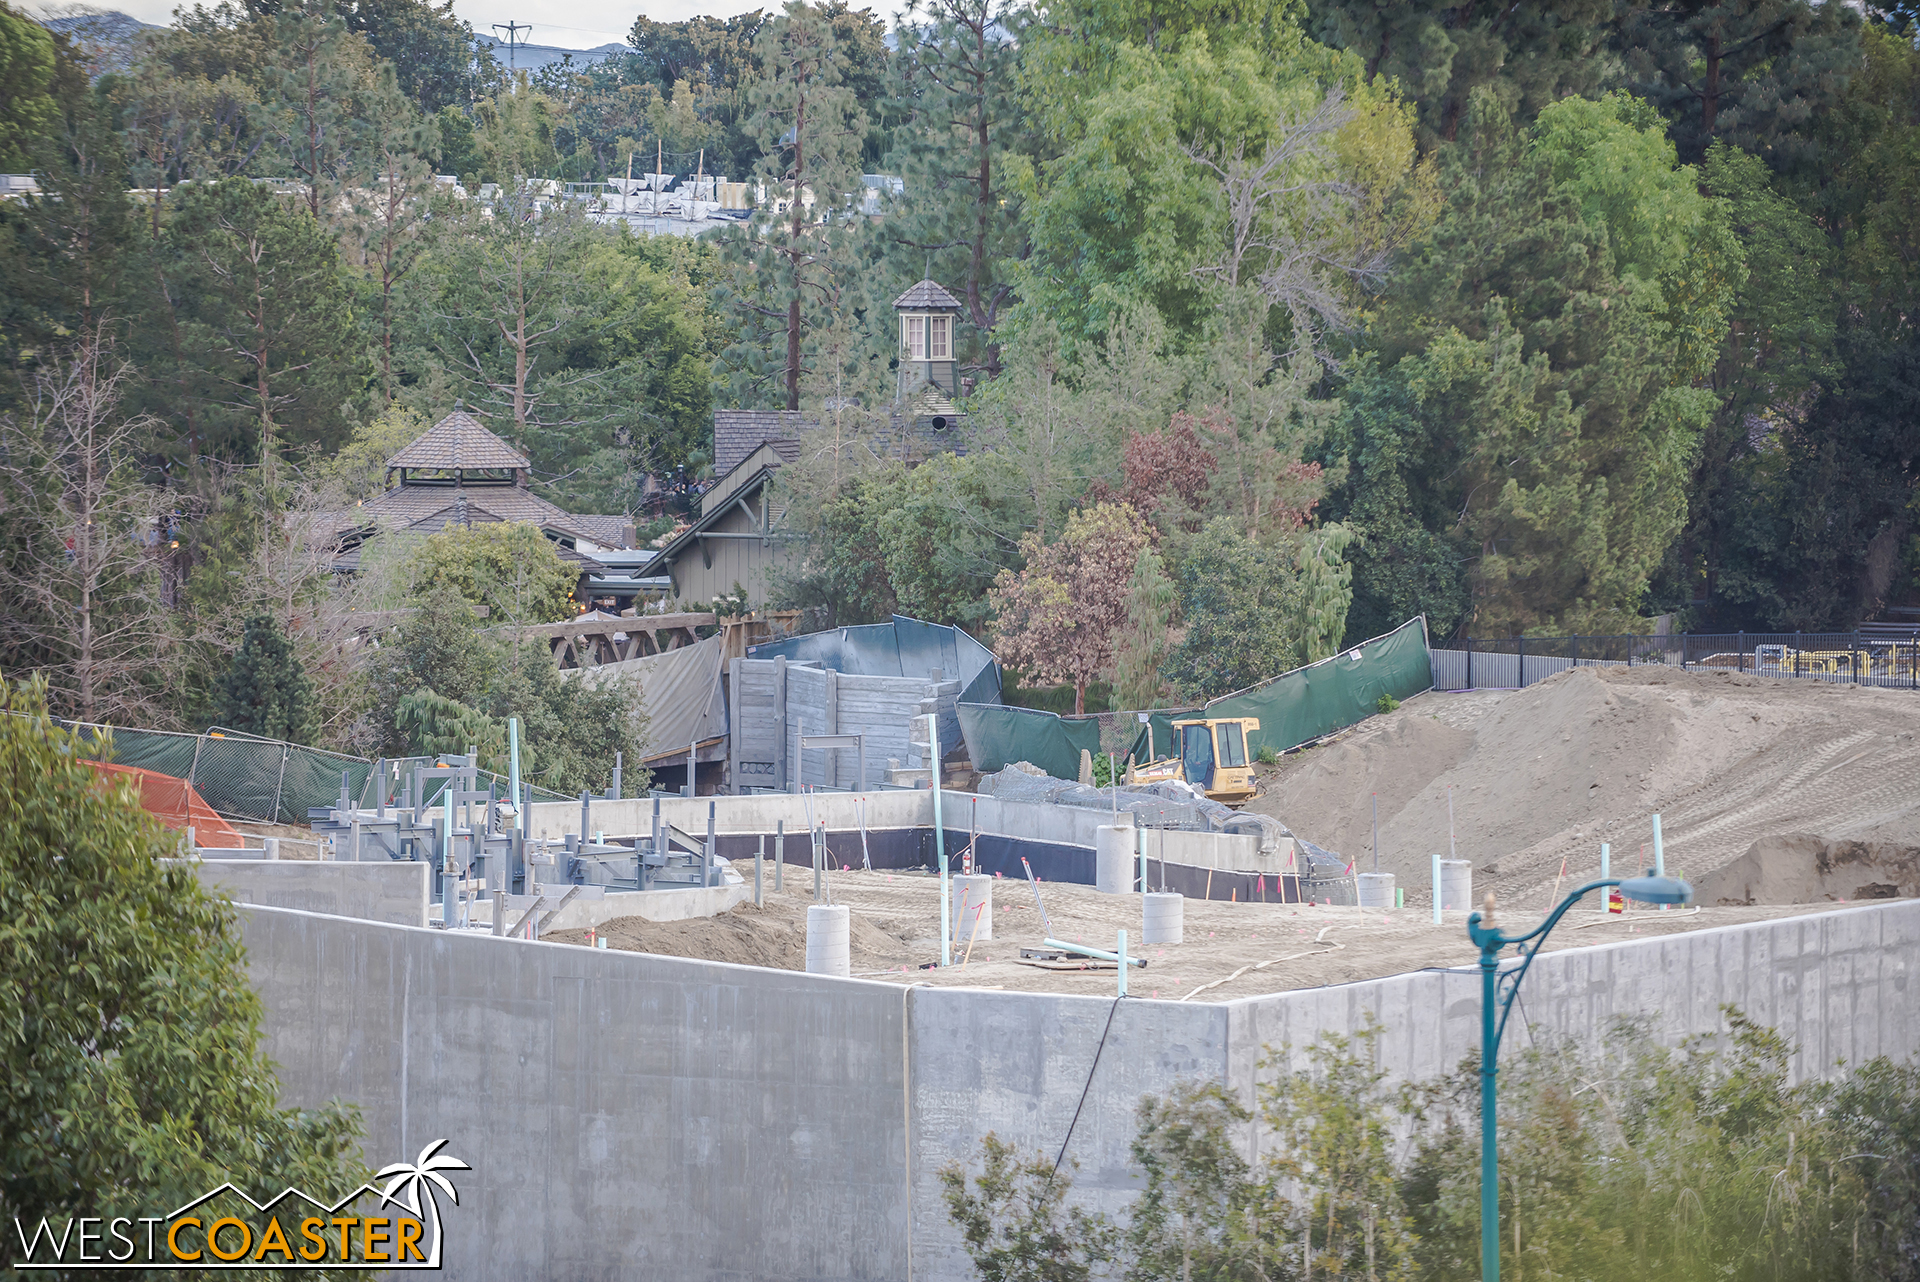 Looking toward the Critter Country entrance.